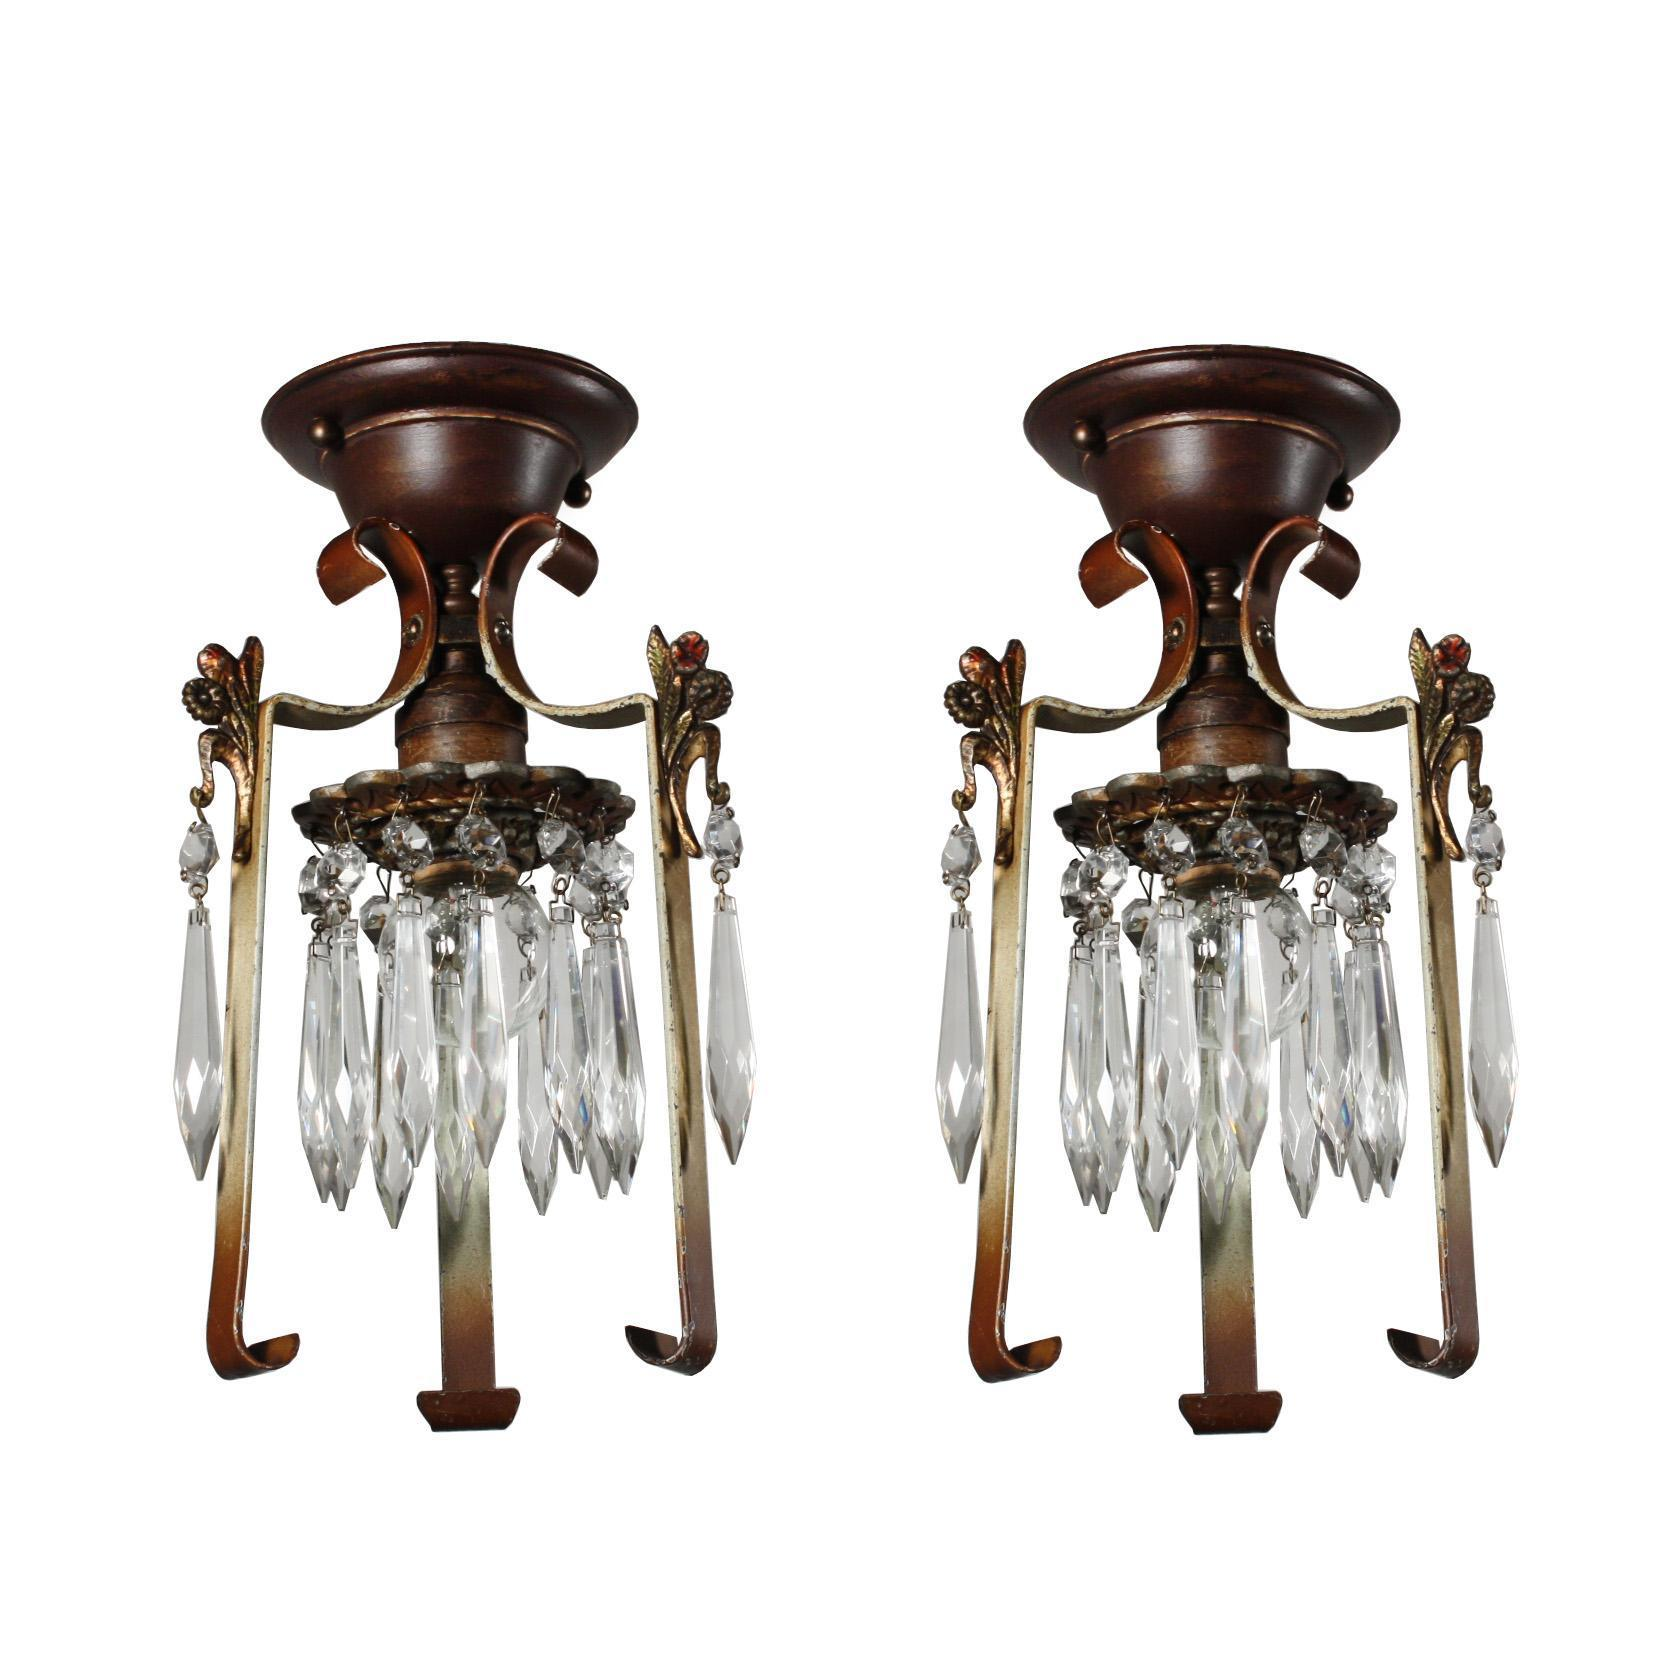 Lovely Antique One-Light Flush Mount Fixtures with Prisms, Early 1900's